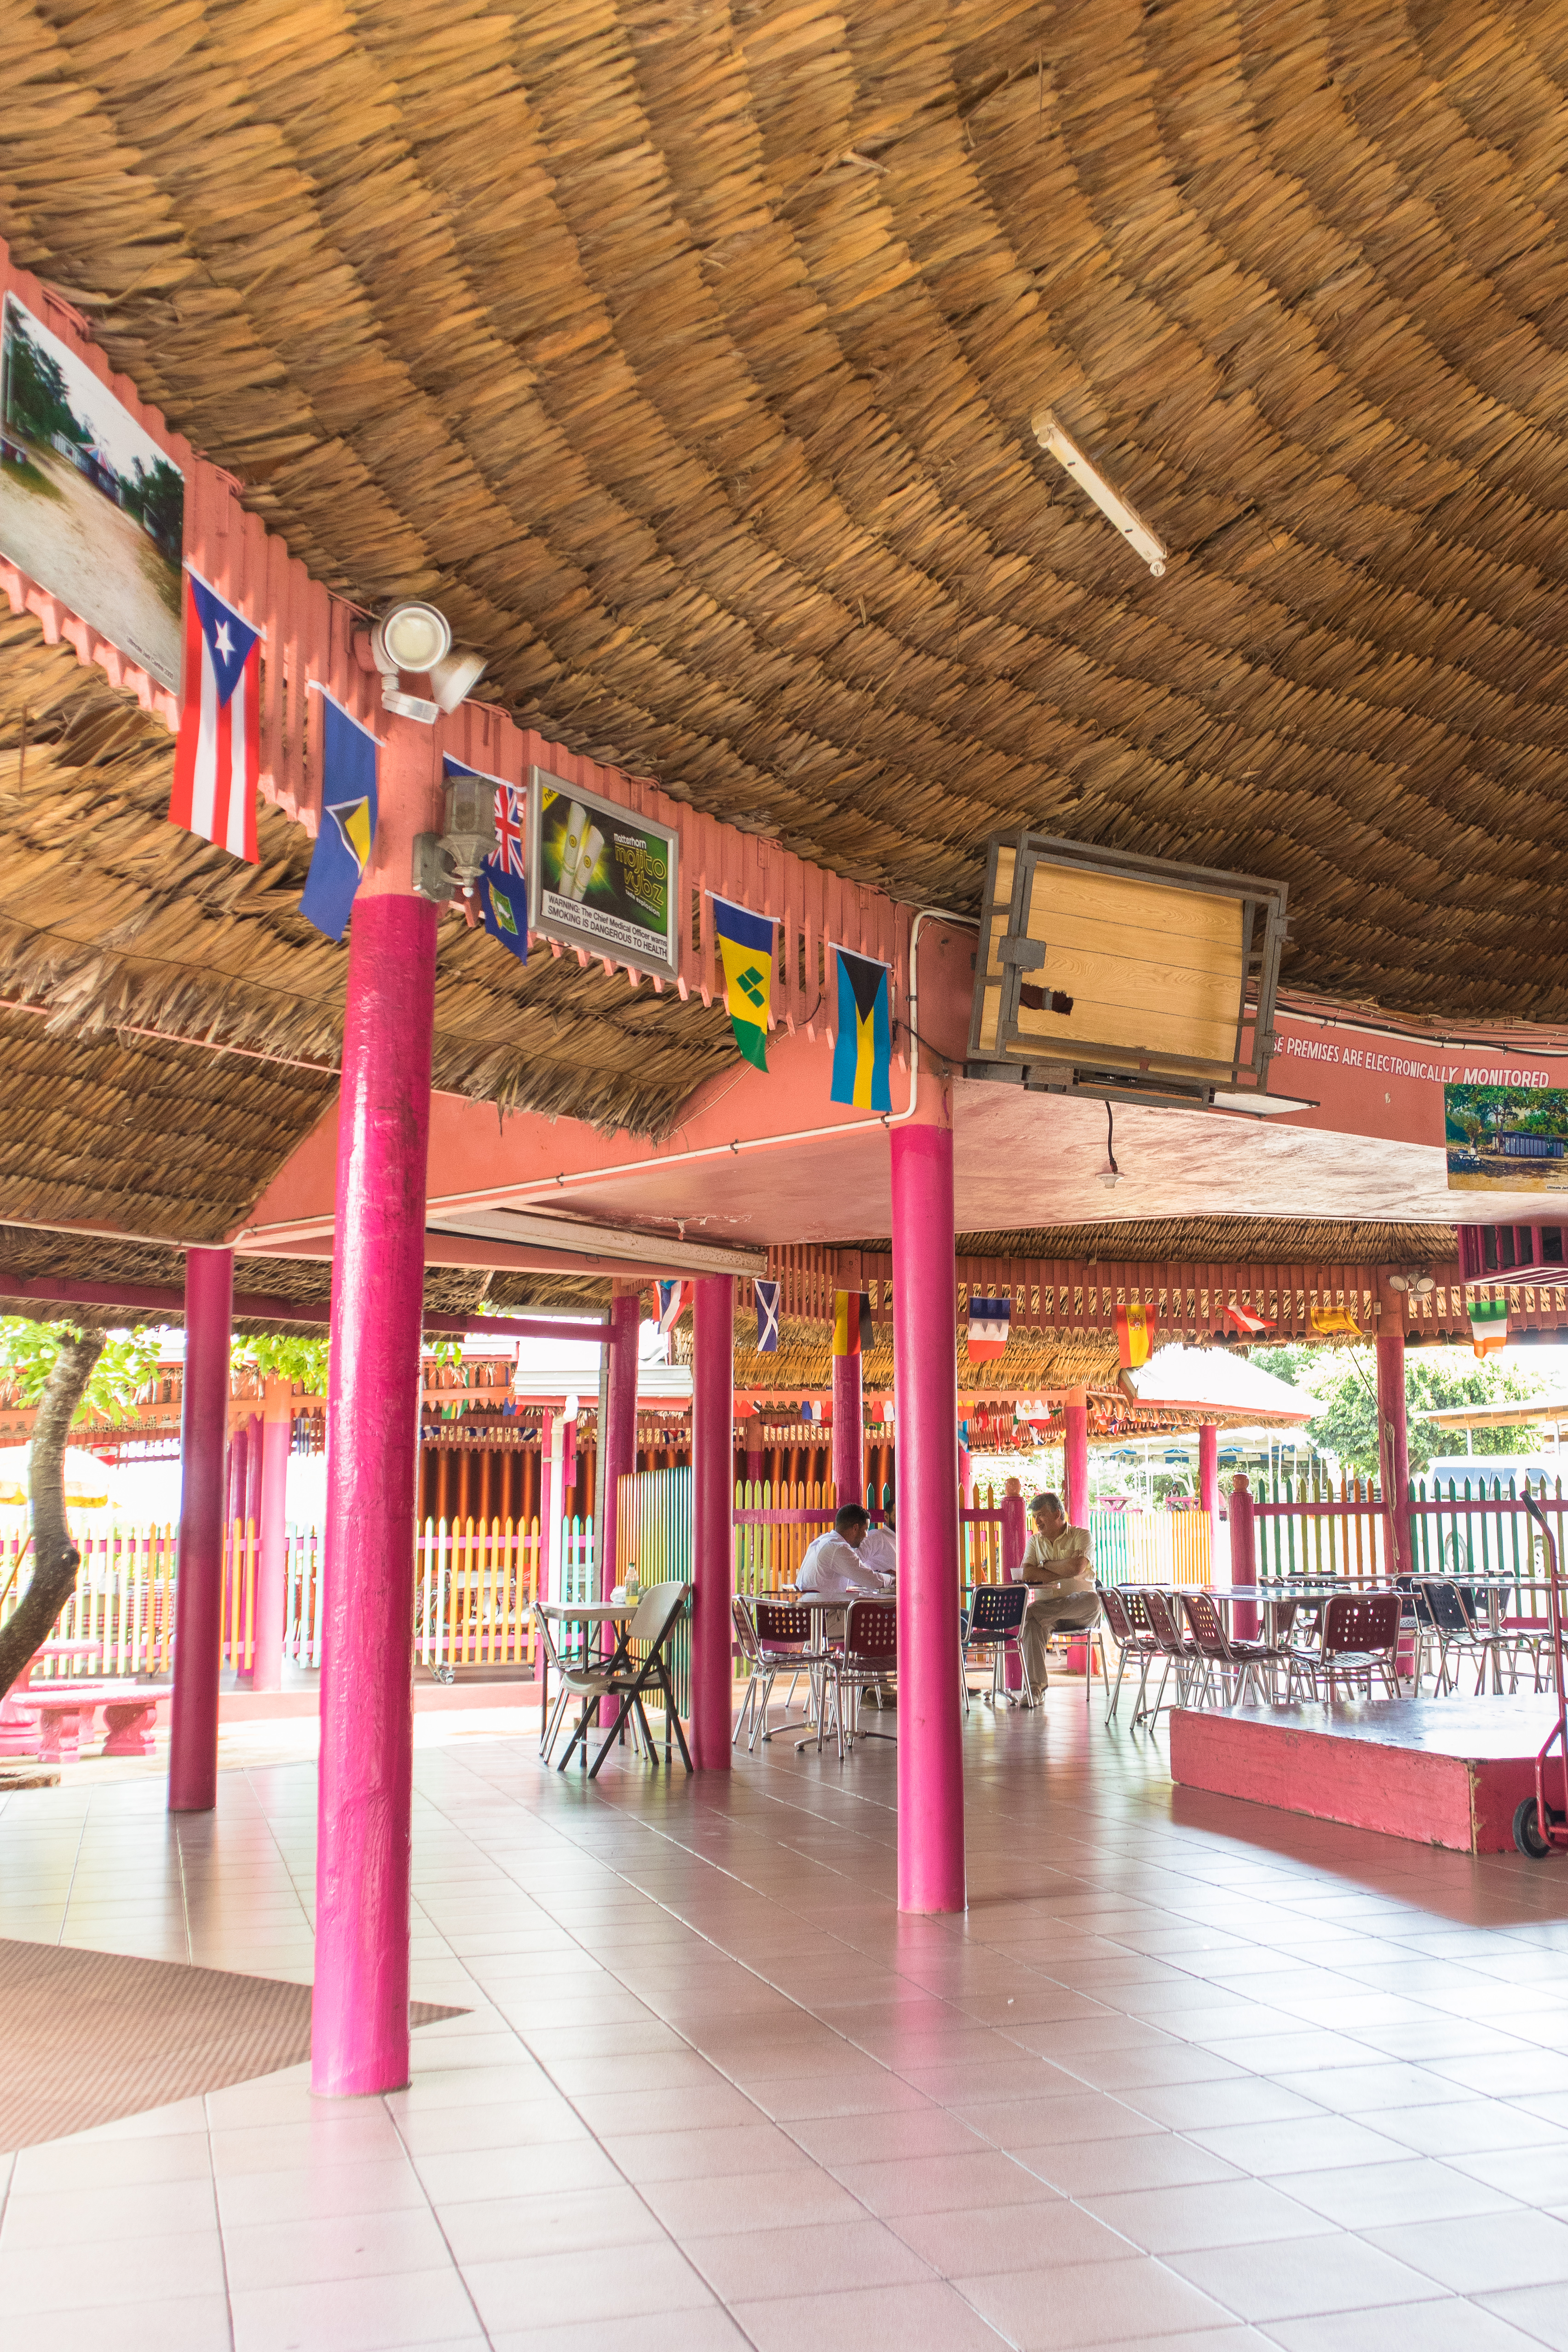 Ever fancied visiting Ocho Rios, a popular cruise town in Jamaica? Travel blogger Kristabel Plummer reveals why it's a convenient place to visit for jerk centres, kitch hotels and adventures at Mystic Mountain and Dunns River Falls.